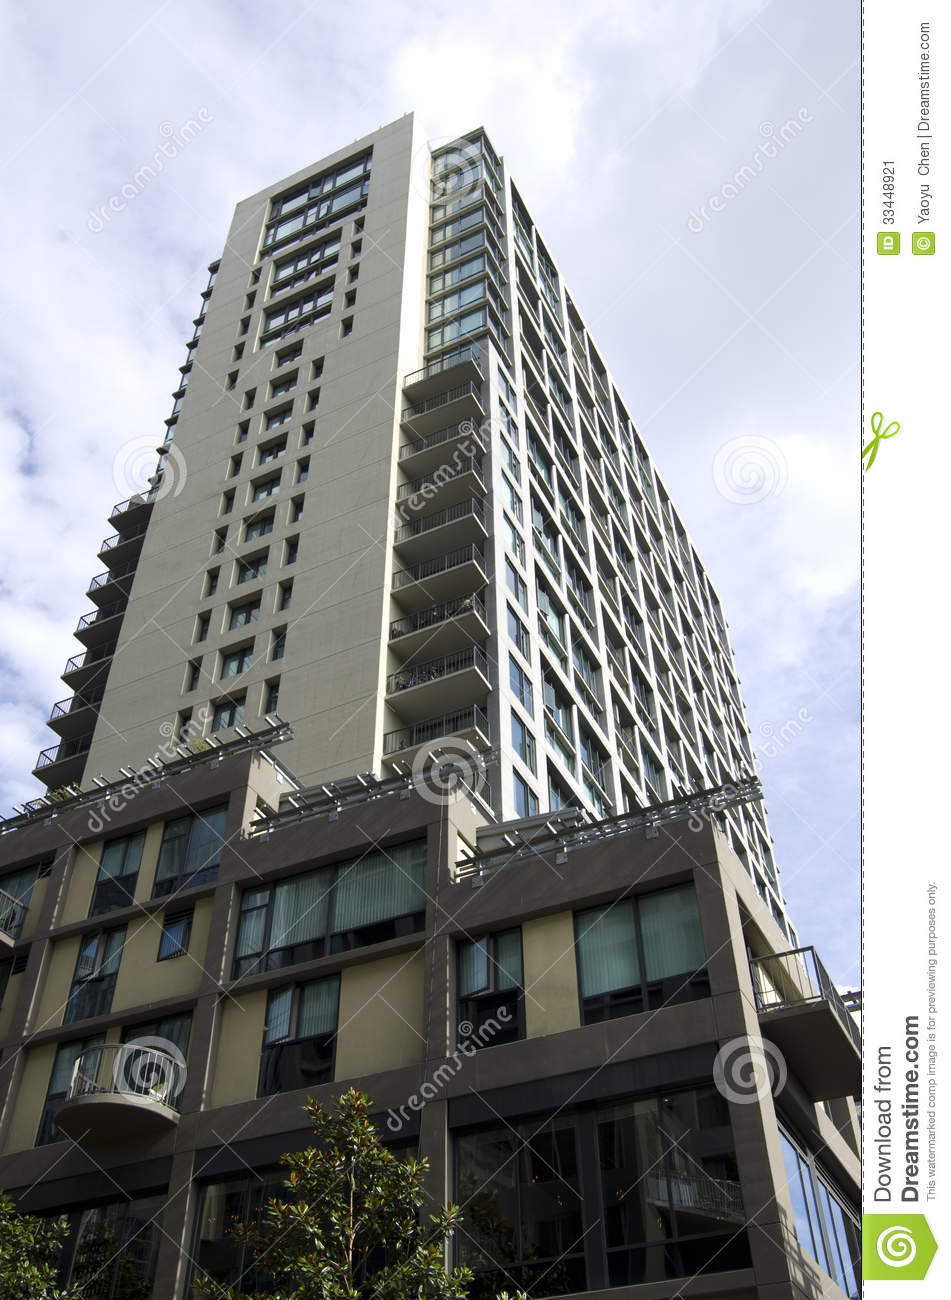 Apartment building stock image image 33448921 for City apartment building